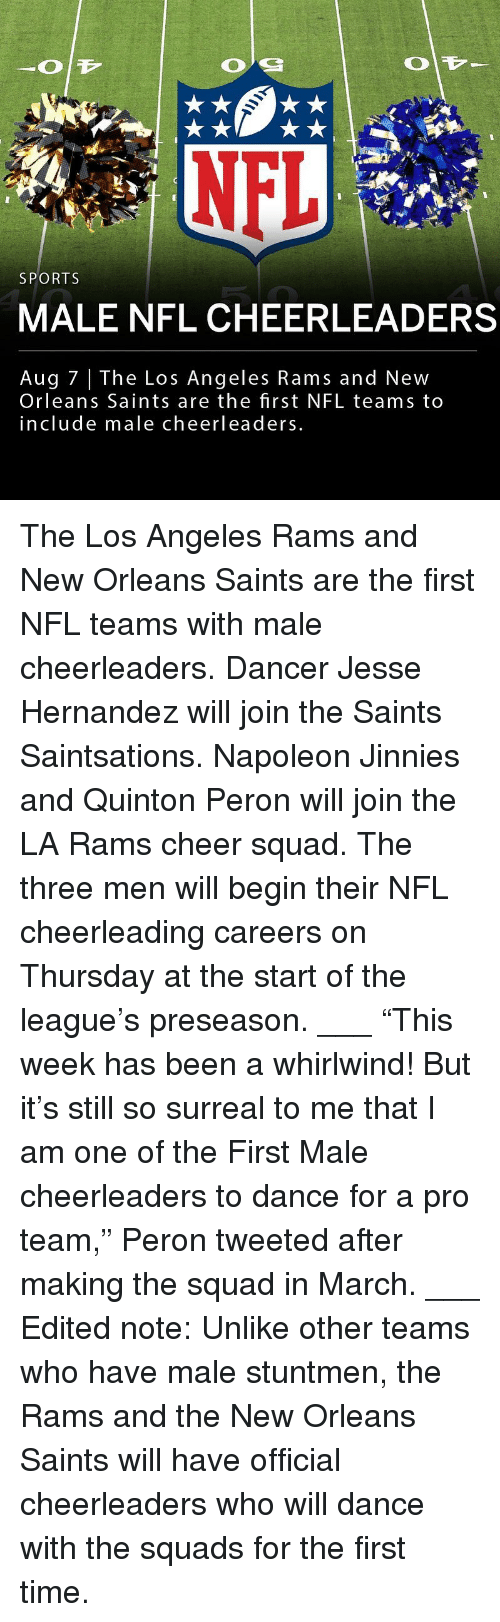 "New Orleans Saints: SPORTS  MALE NFL CHEERLEADERS  Aug 7 | The Los Angeles Rams and New  Orleans Saints are the first NFL teams to  include male cheerleaders The Los Angeles Rams and New Orleans Saints are the first NFL teams with male cheerleaders. Dancer Jesse Hernandez will join the Saints Saintsations. Napoleon Jinnies and Quinton Peron will join the LA Rams cheer squad. The three men will begin their NFL cheerleading careers on Thursday at the start of the league's preseason. ___ ""This week has been a whirlwind! But it's still so surreal to me that I am one of the First Male cheerleaders to dance for a pro team,"" Peron tweeted after making the squad in March. ___ Edited note: Unlike other teams who have male stuntmen, the Rams and the New Orleans Saints will have official cheerleaders who will dance with the squads for the first time."